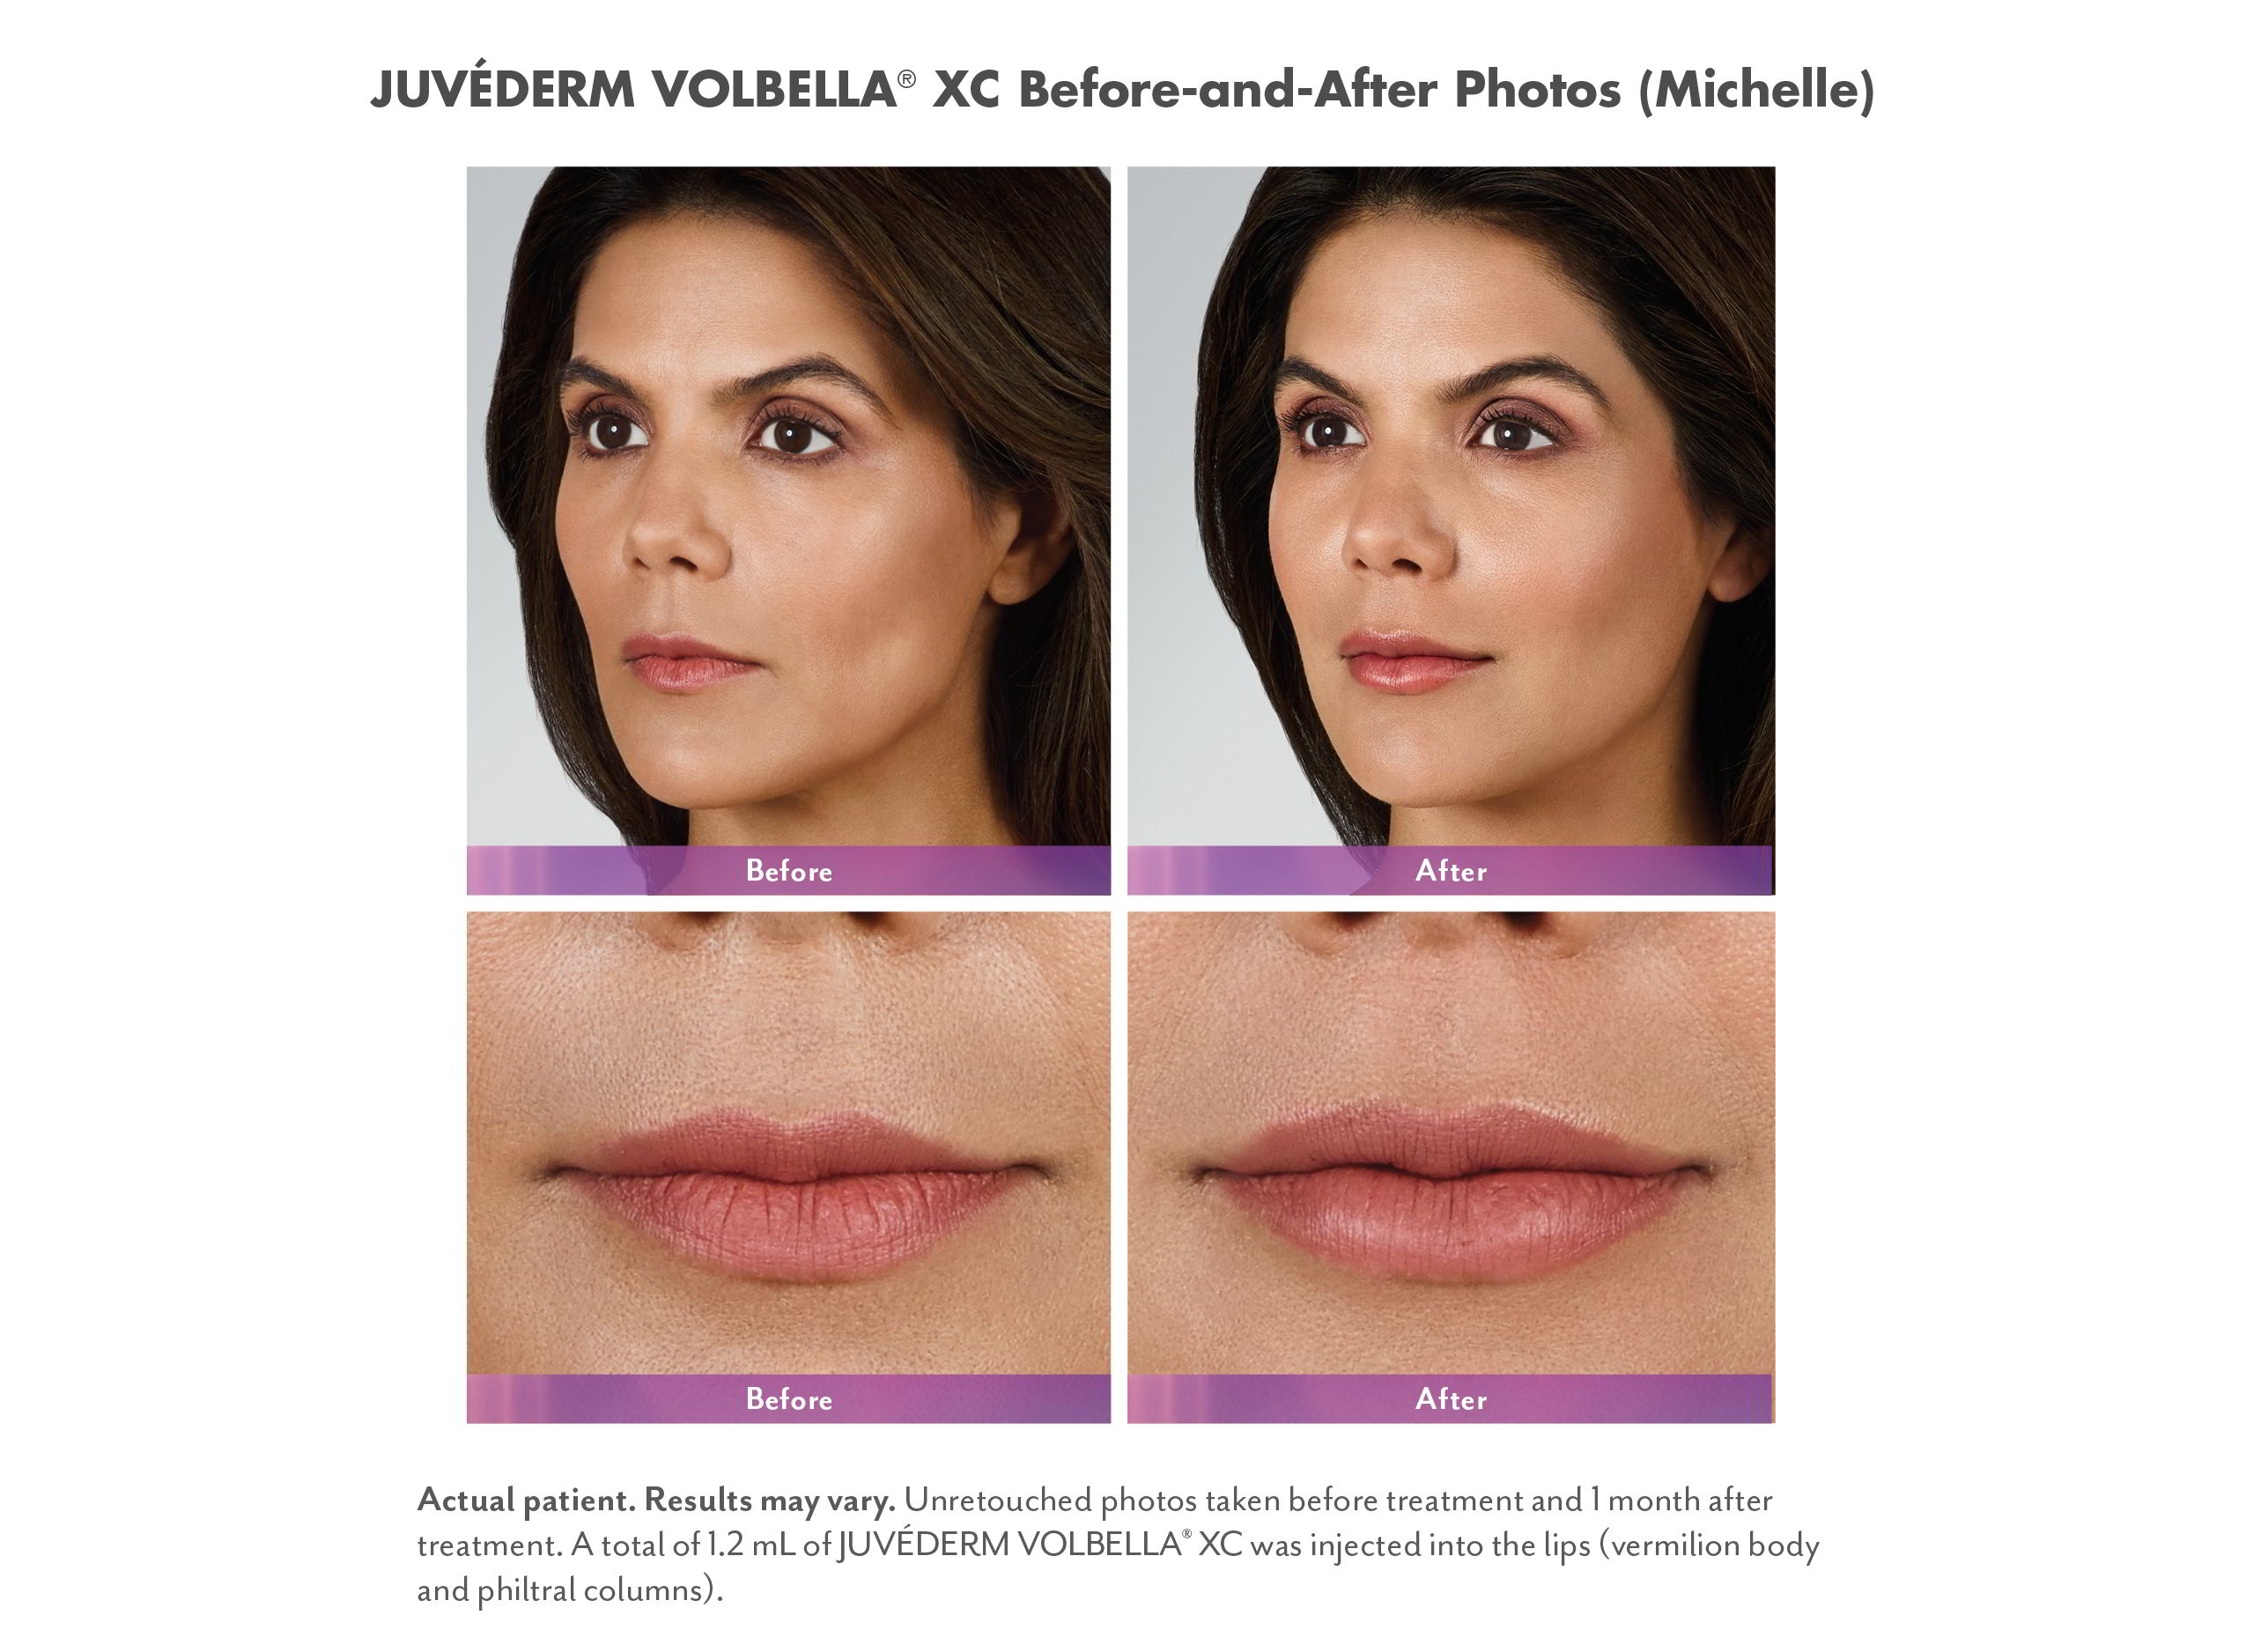 Juvederm Volbella XC Injectable Fillers Before & Afters